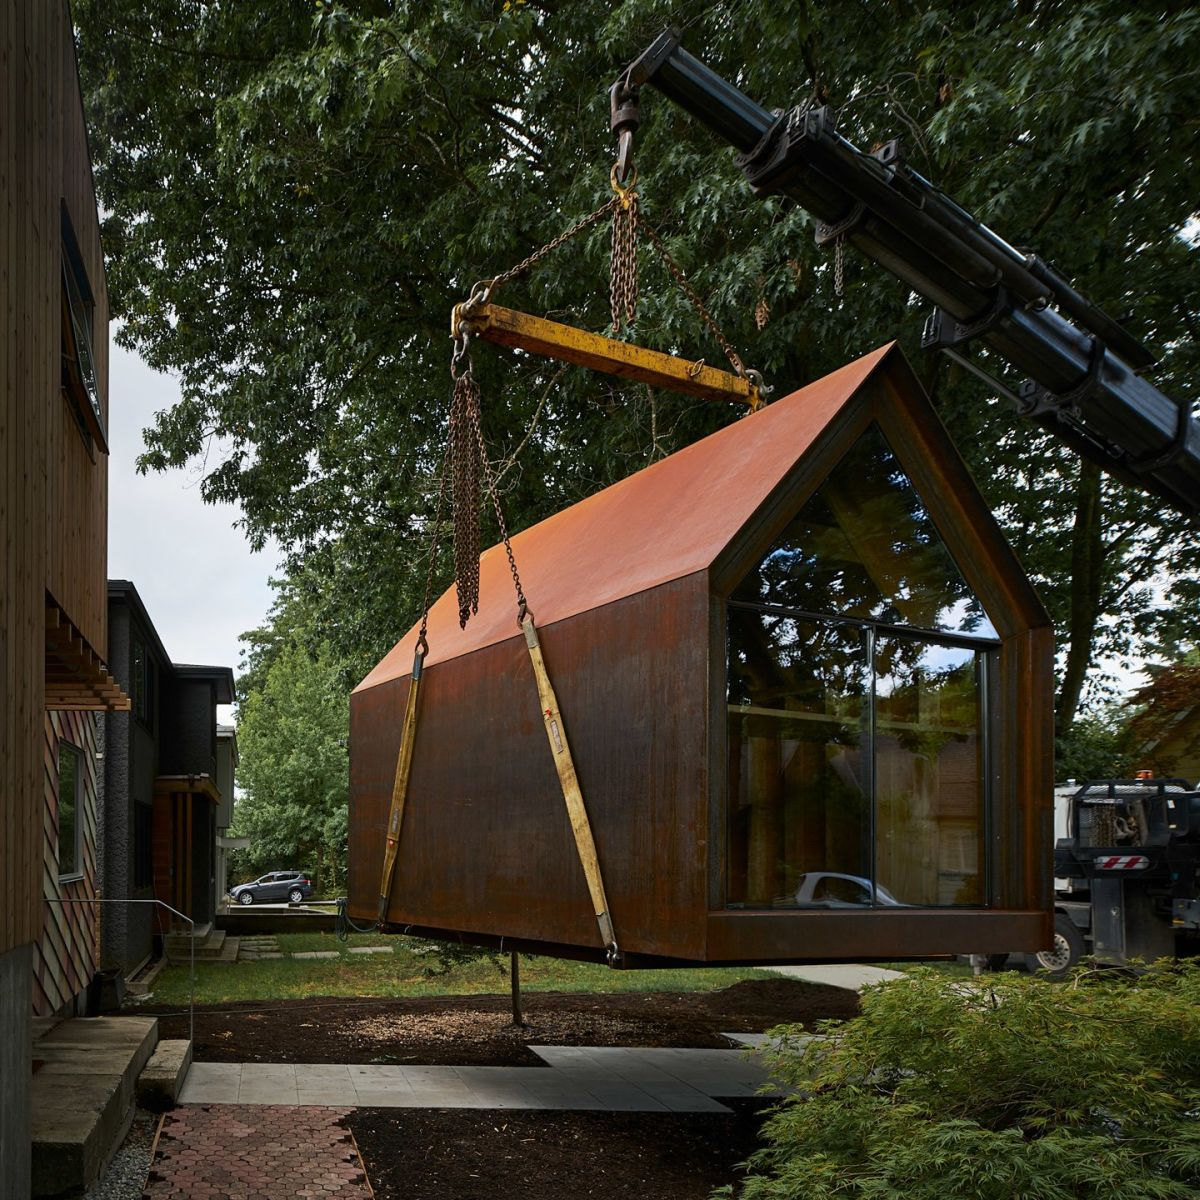 The corten steel exterior forms a seamless shell with no visible fasteners and this gives the cabin a minimalist look